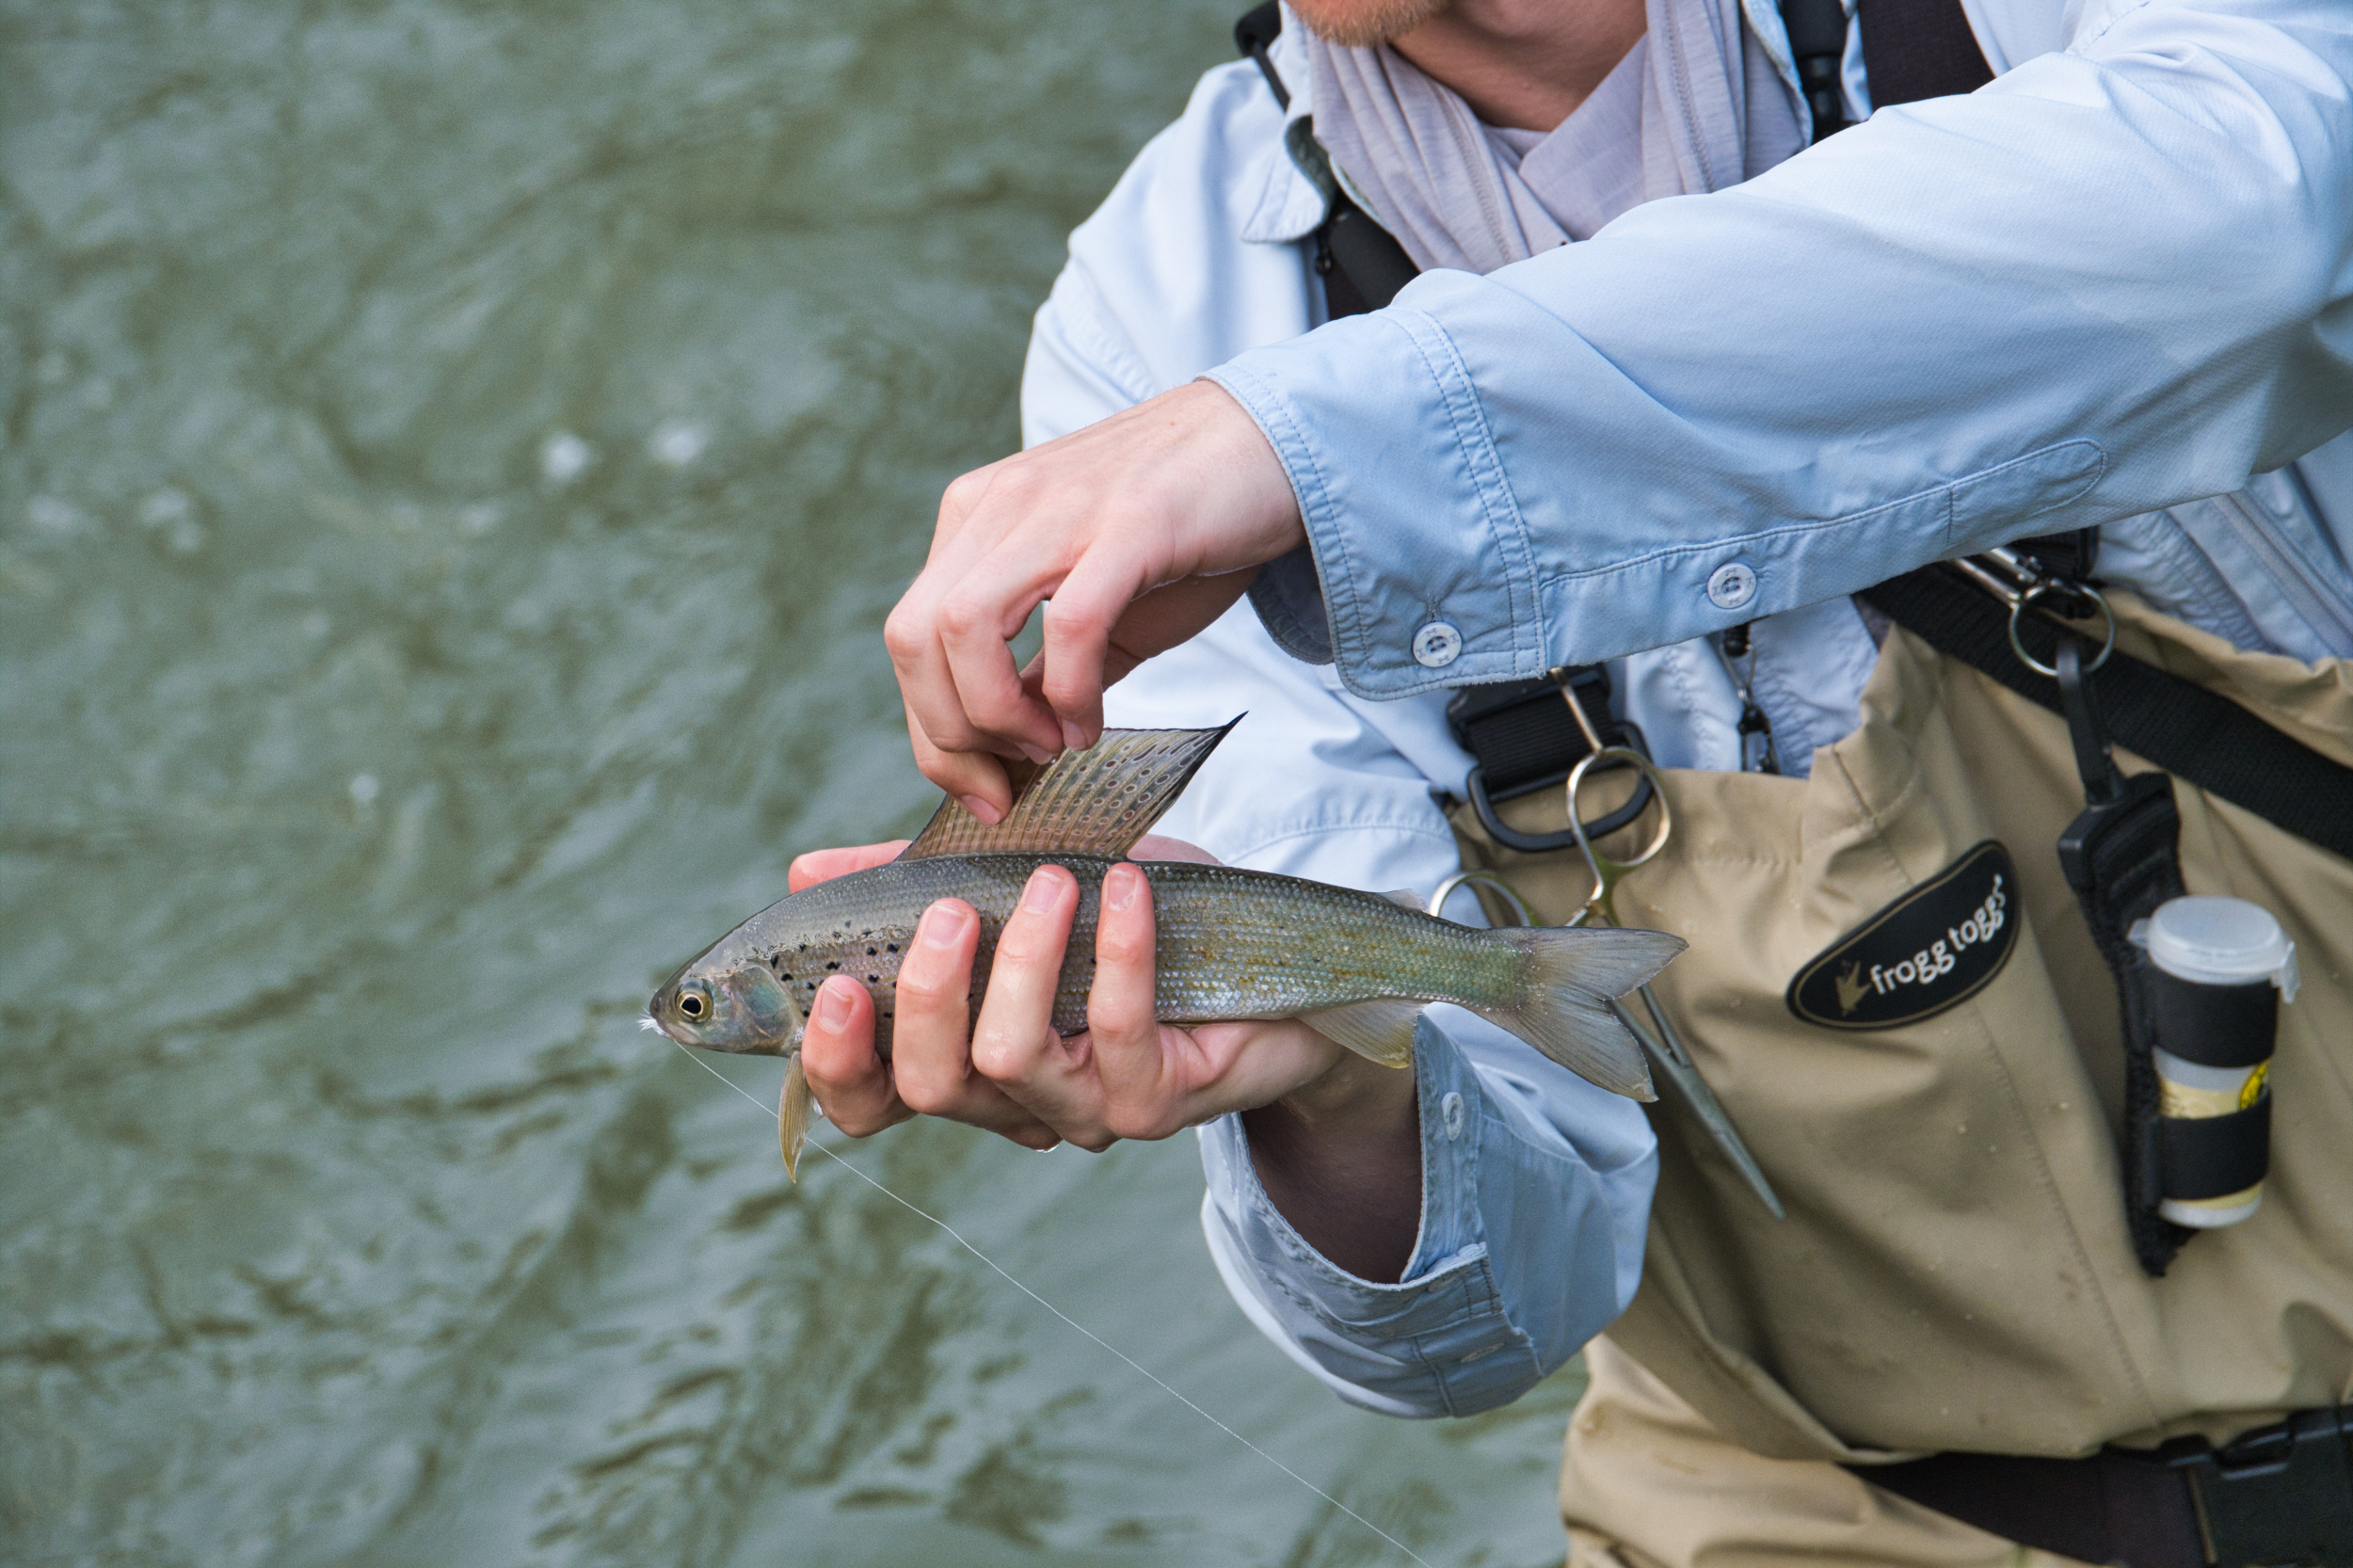 We watched this fly fisherman catching Grayling, with it's large dorsal fin